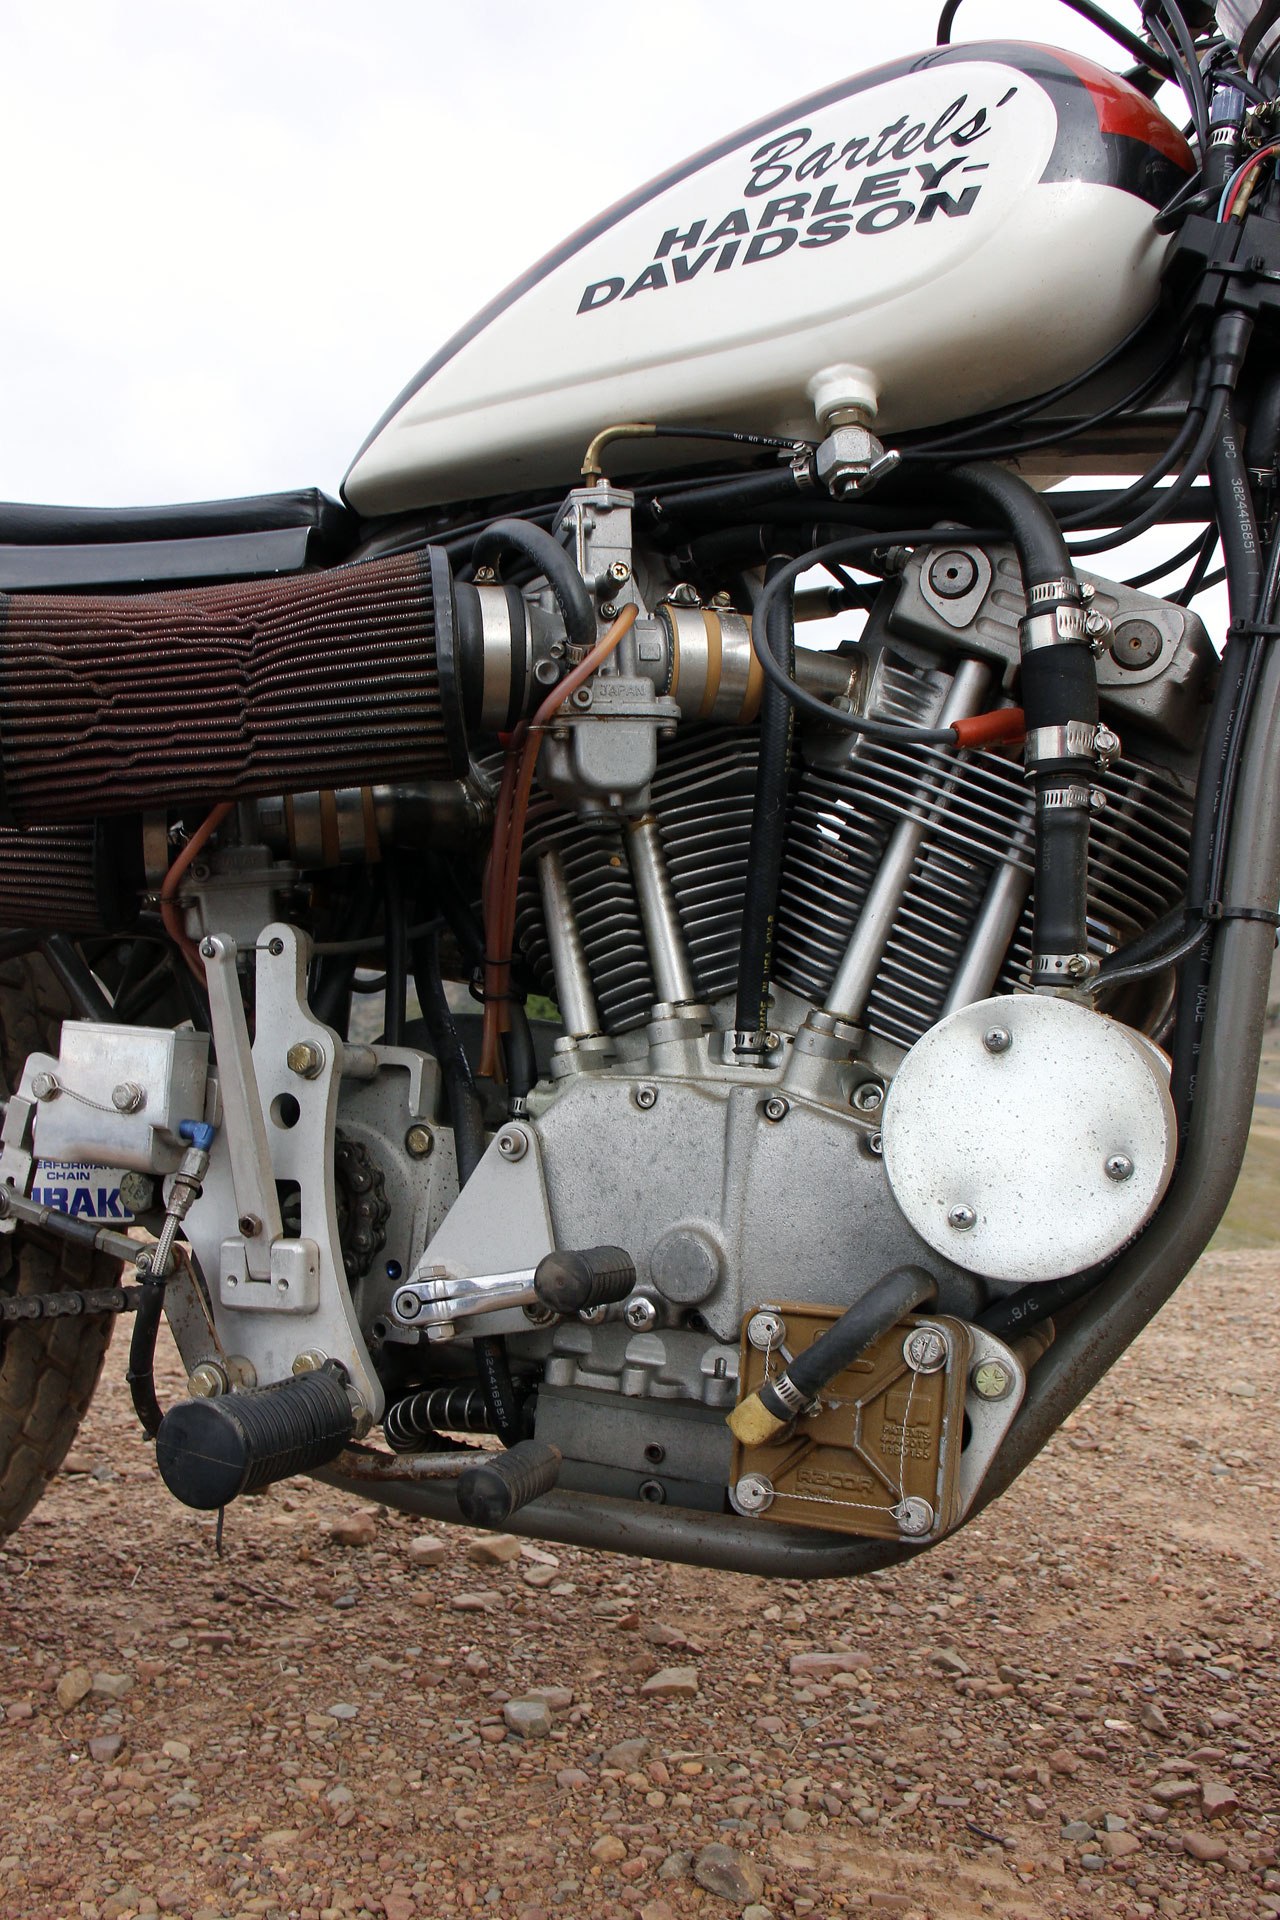 With the all alloy XR 750, Harley released a powerplant to match the chassis, although this offering features a C&J rolling chassis